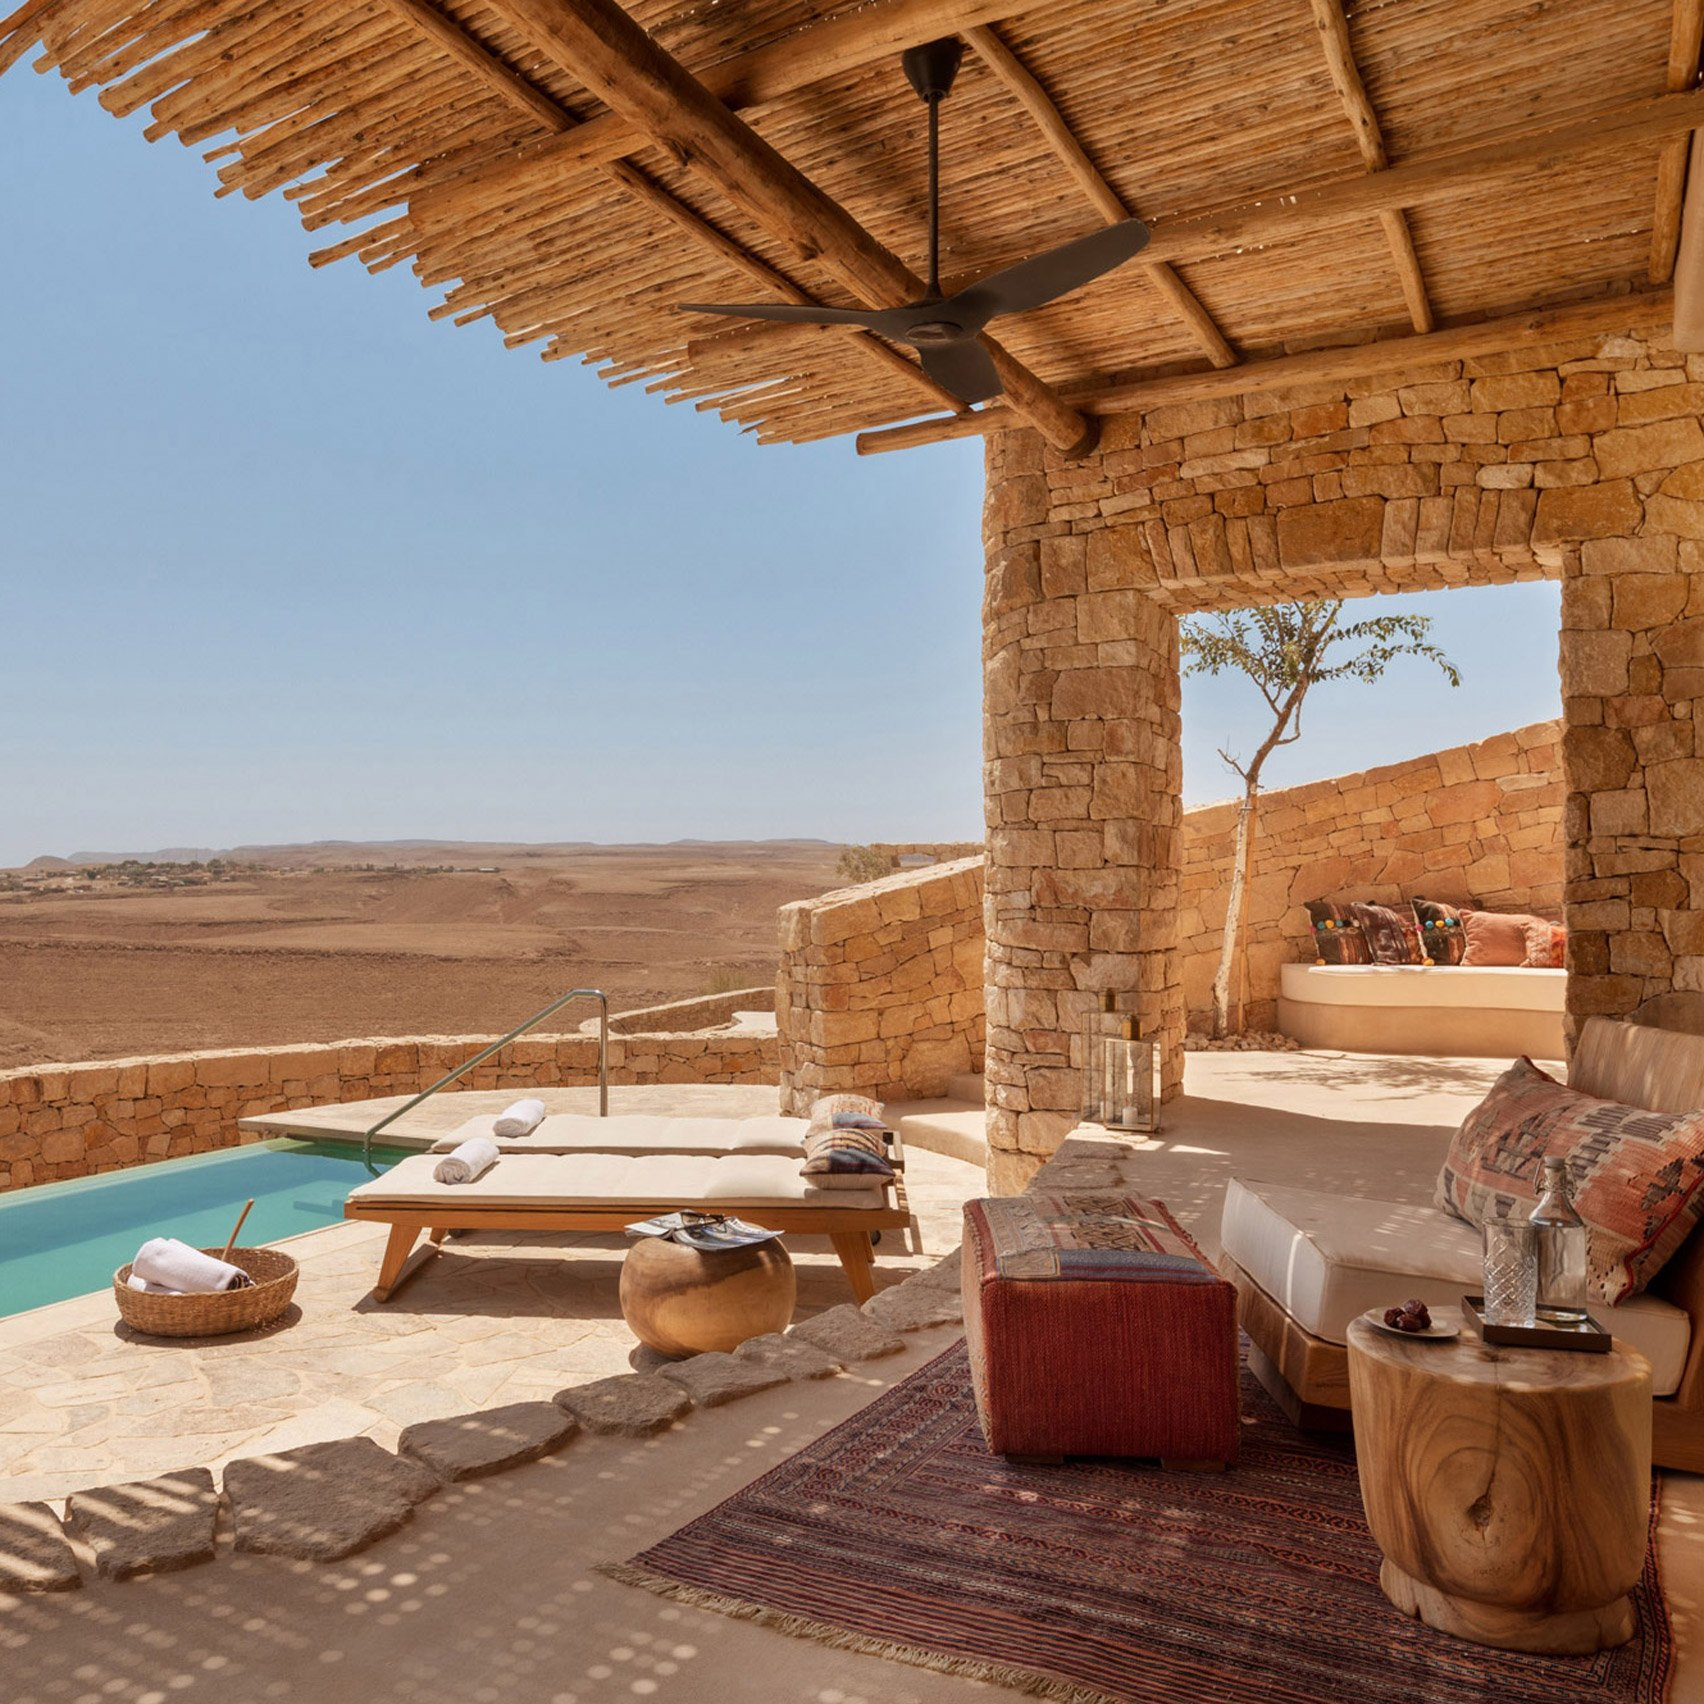 Dezeen's top hotels of 2020: Six Senses Shaharut by Plesner Architects